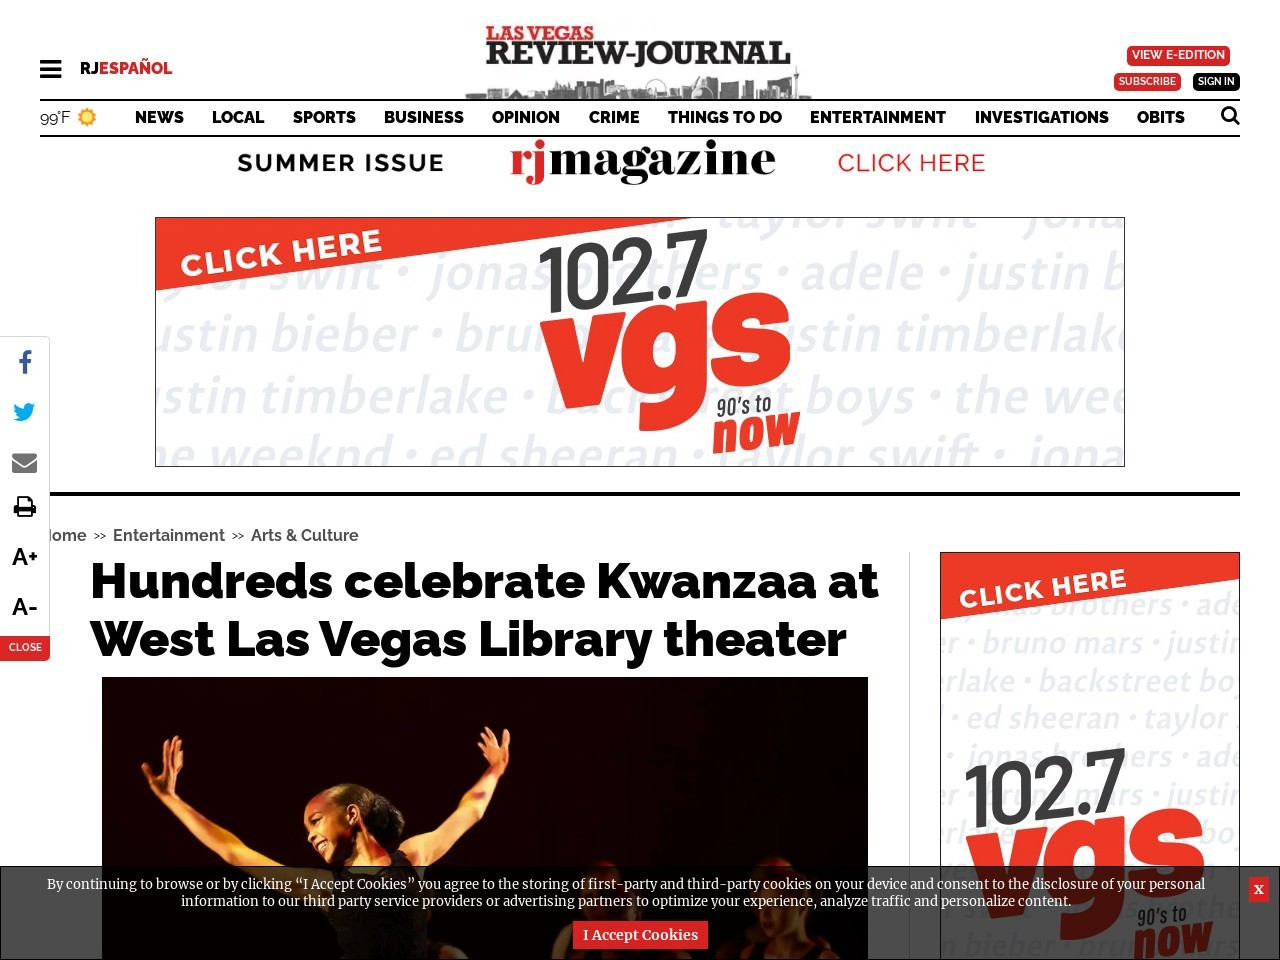 Hundreds celebrate Kwanzaa at West Las Vegas Library theater